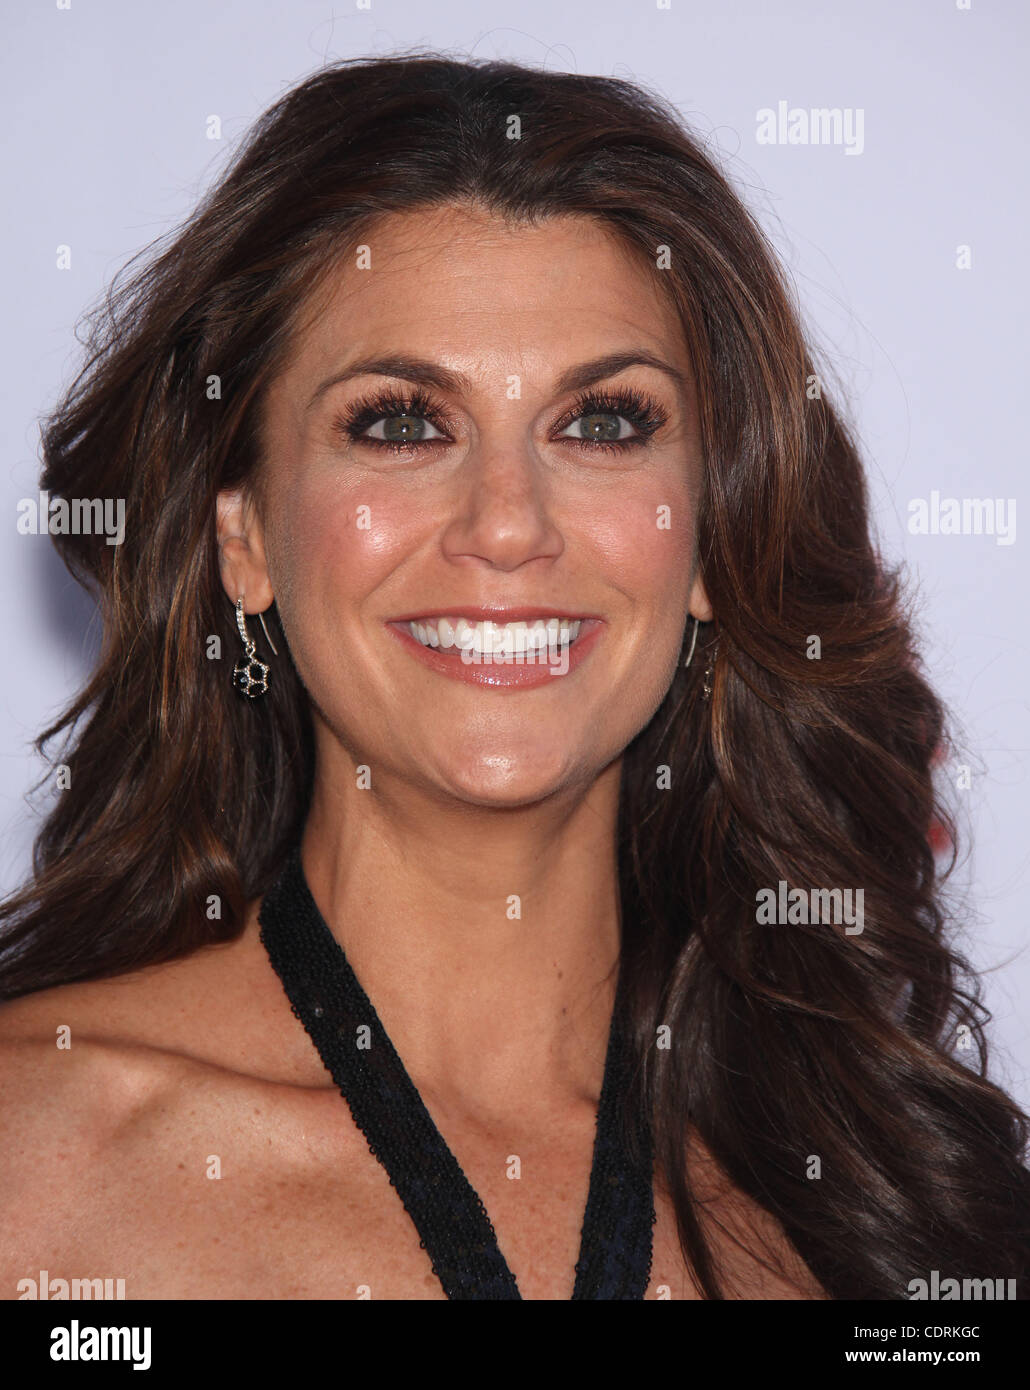 May 24, 2011 - Los Angeles, California, U.S. - SAMANTHA HARRIS arrives for the premiere of the film 'Tree Of - Stock Image